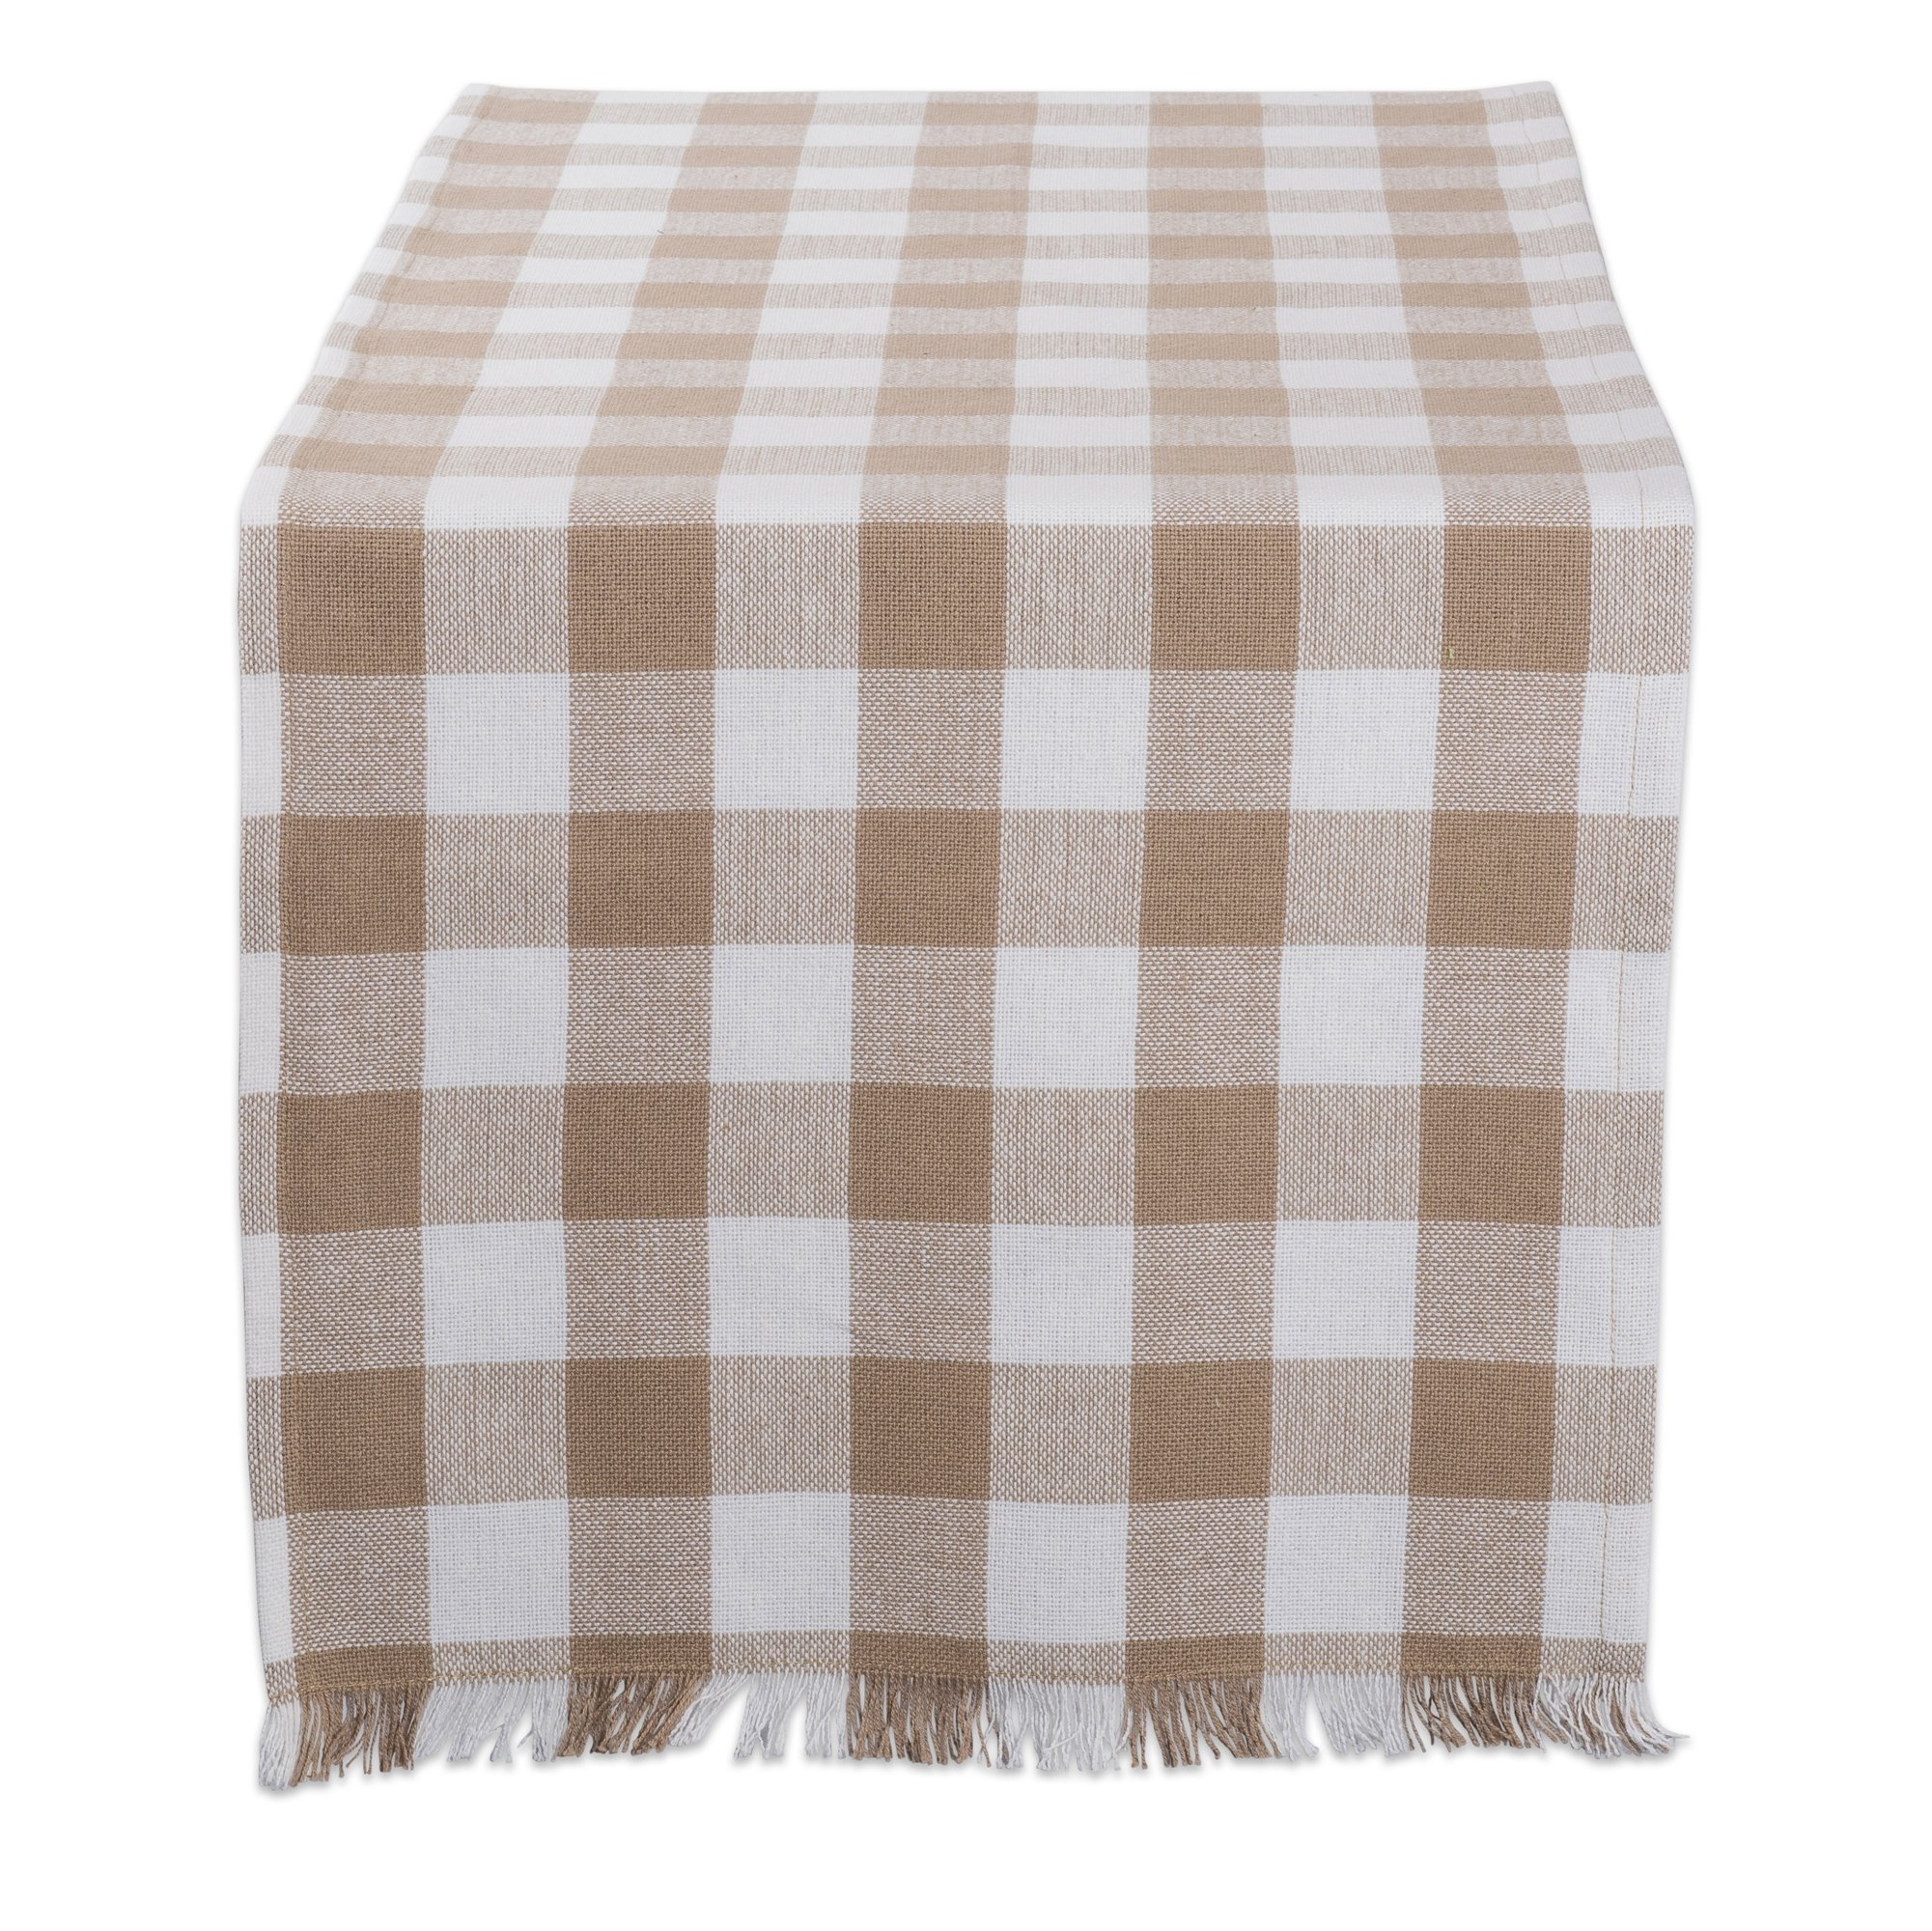 DII Cotton Woven Heavyweight Table Runner with Decorative Fringe for Spring, Summer, Family Dinners, Outdoor Parties, & Everyday Use (14x108'') Stone Check